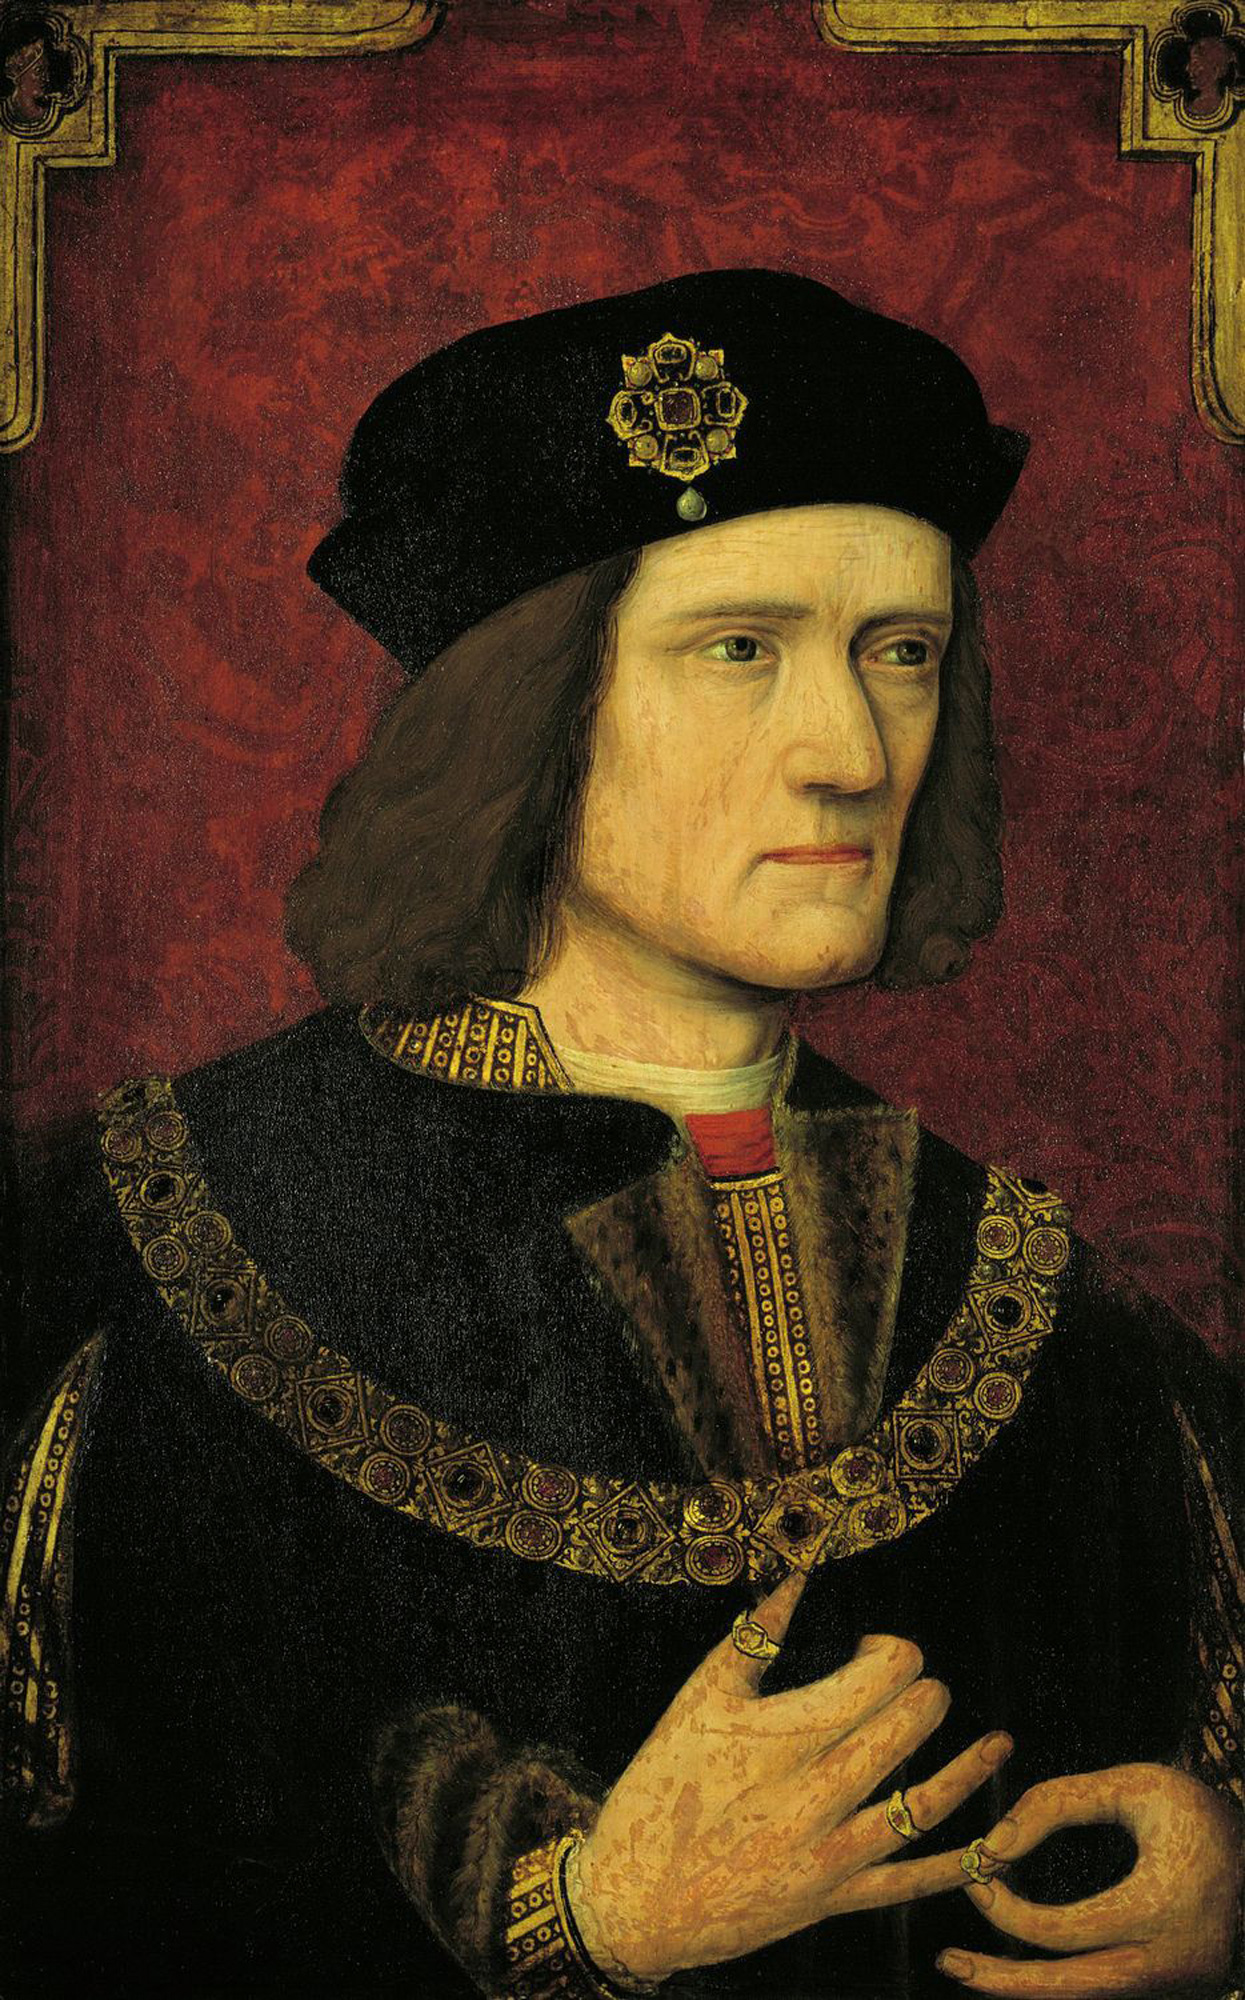 Richard III, portrait with overpaint, c. 1504–20